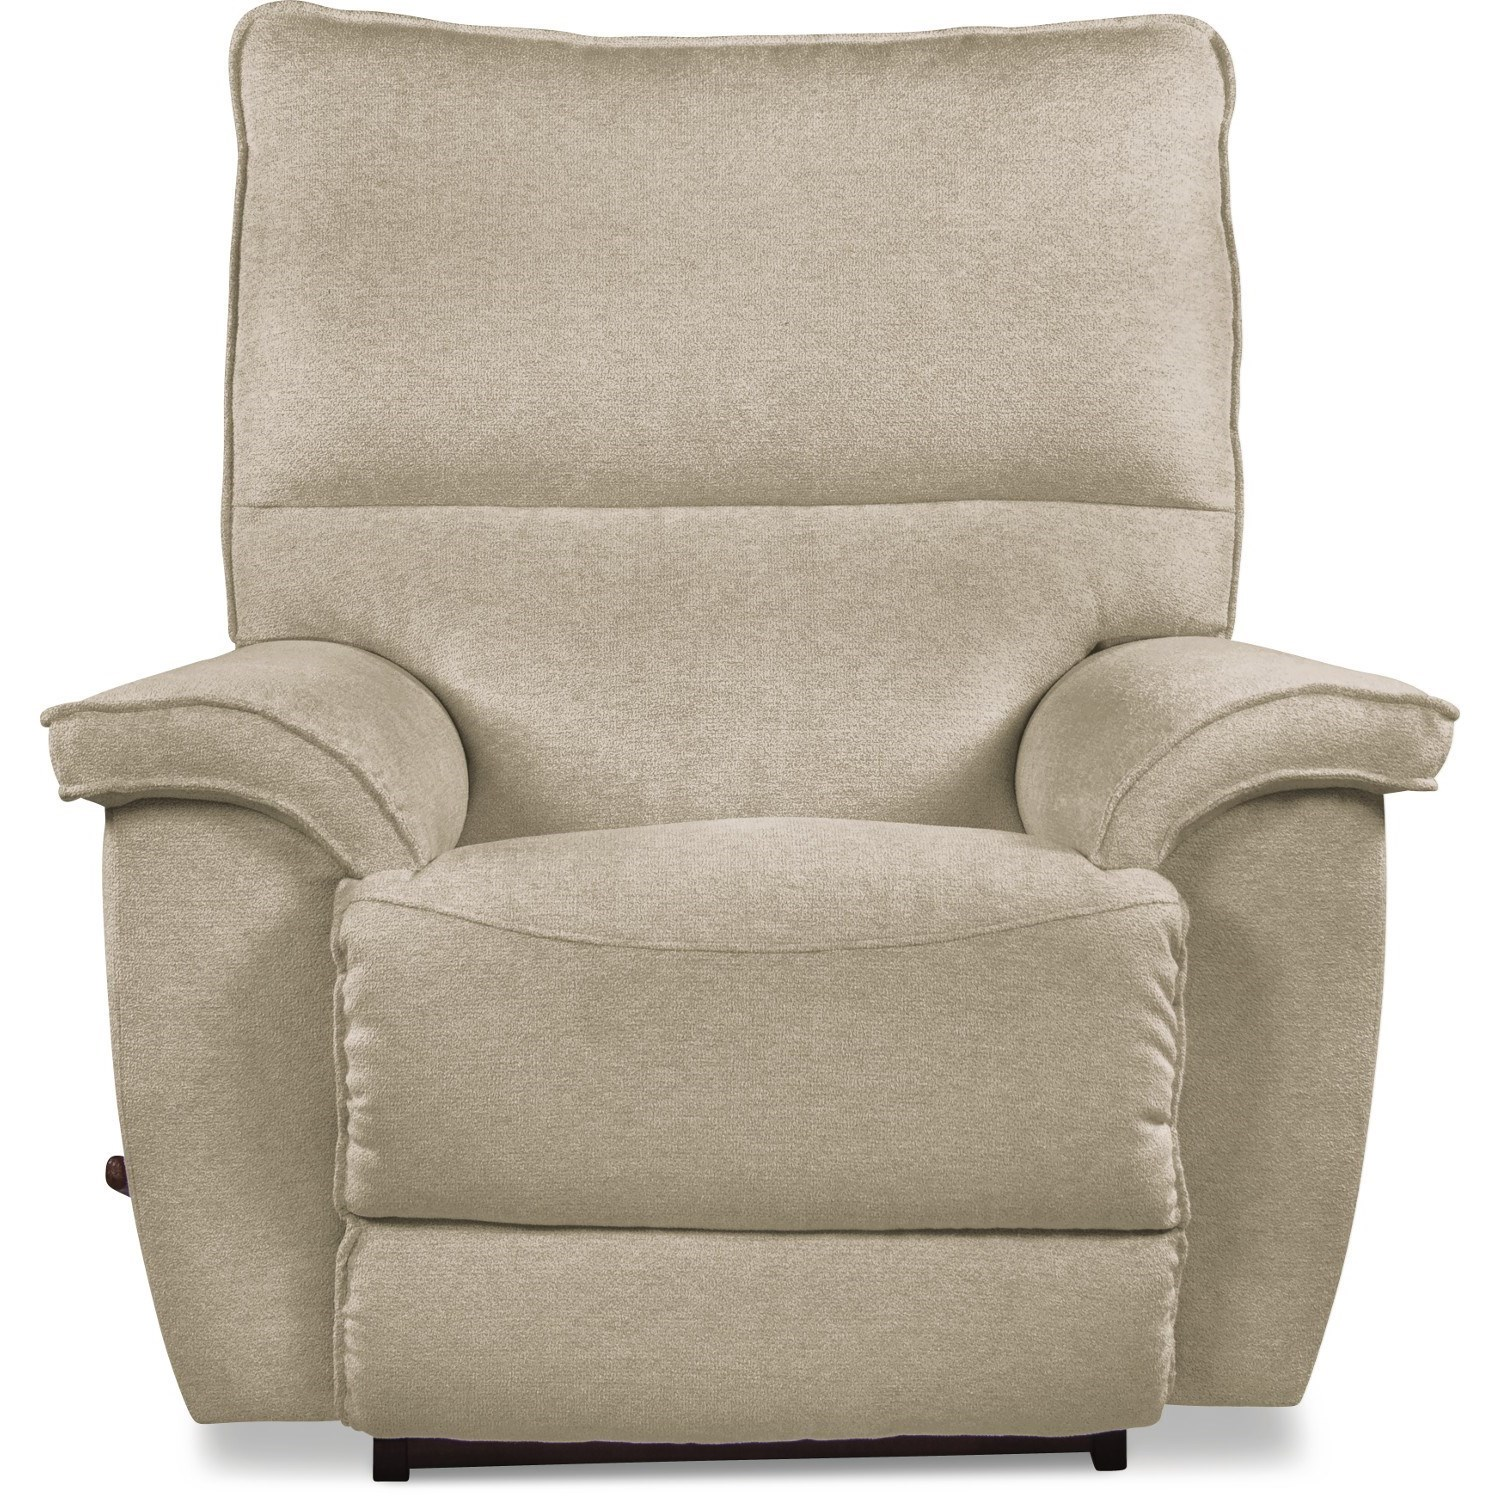 Norris Power Wall Recliner by La-Z-Boy at Houston's Yuma Furniture